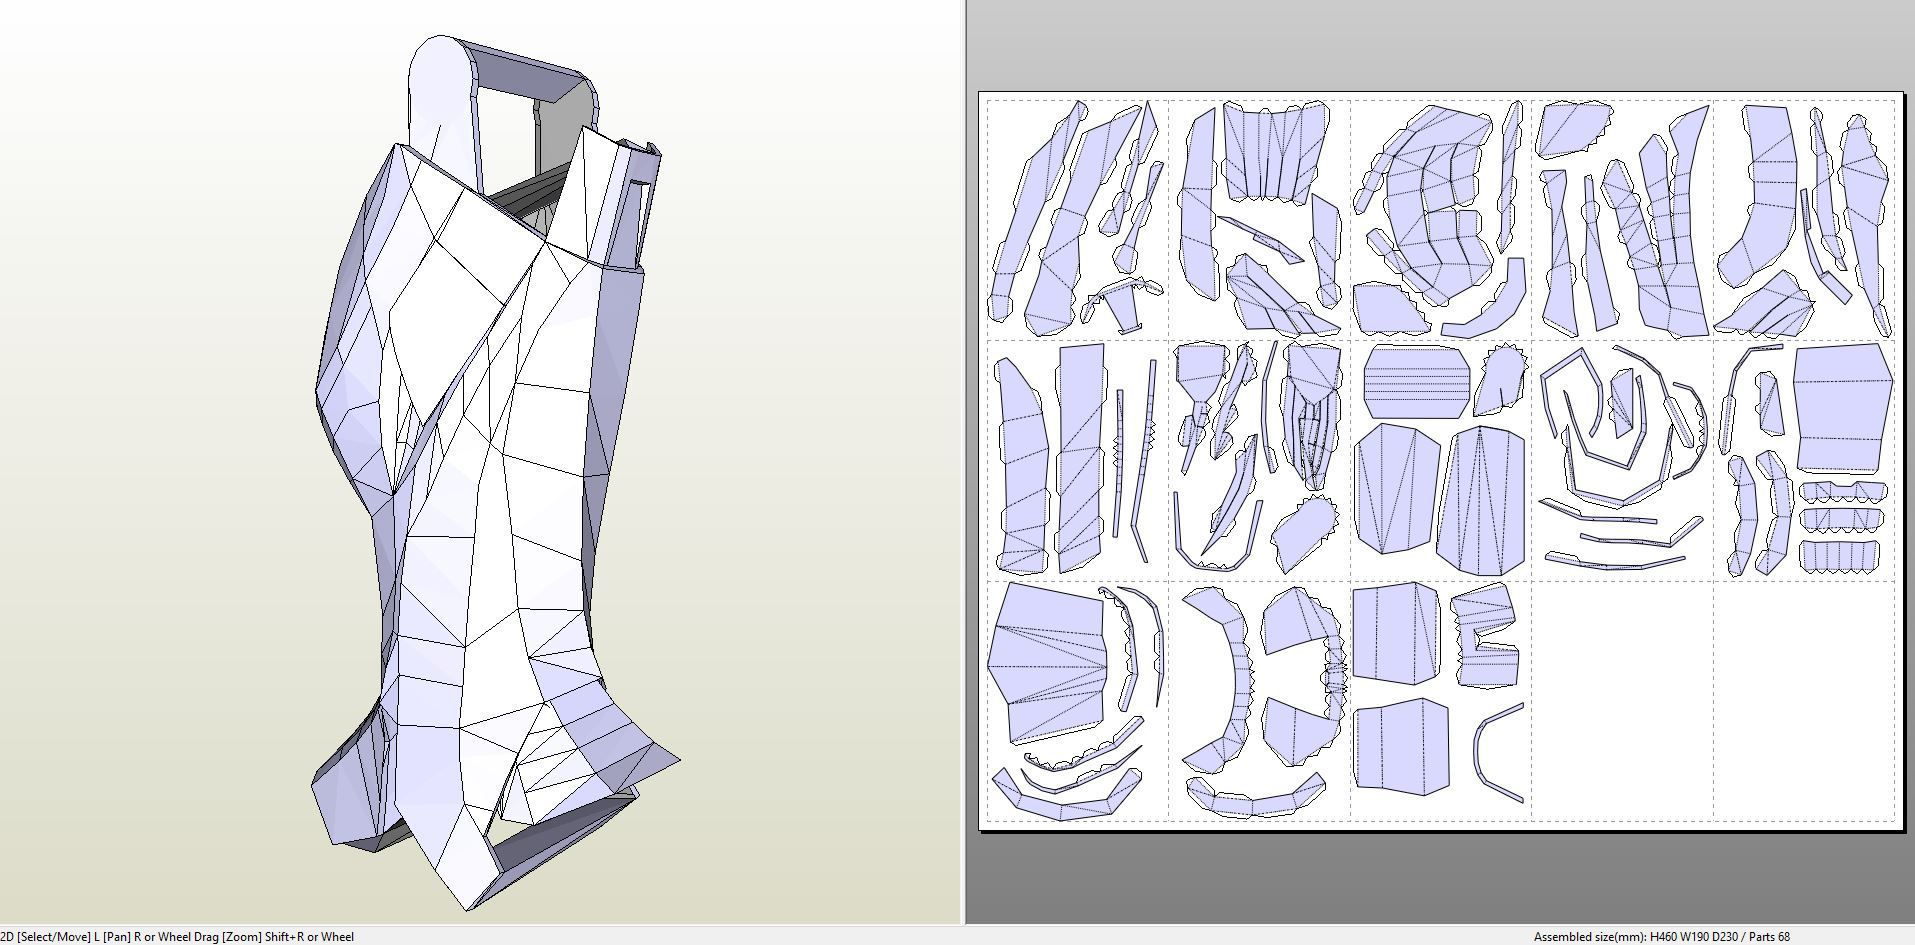 Papercraft Pdo File Template For Iron Man Mk7 Full Armor Iron Man Fan Art Iron Man Art Iron Man Cosplay